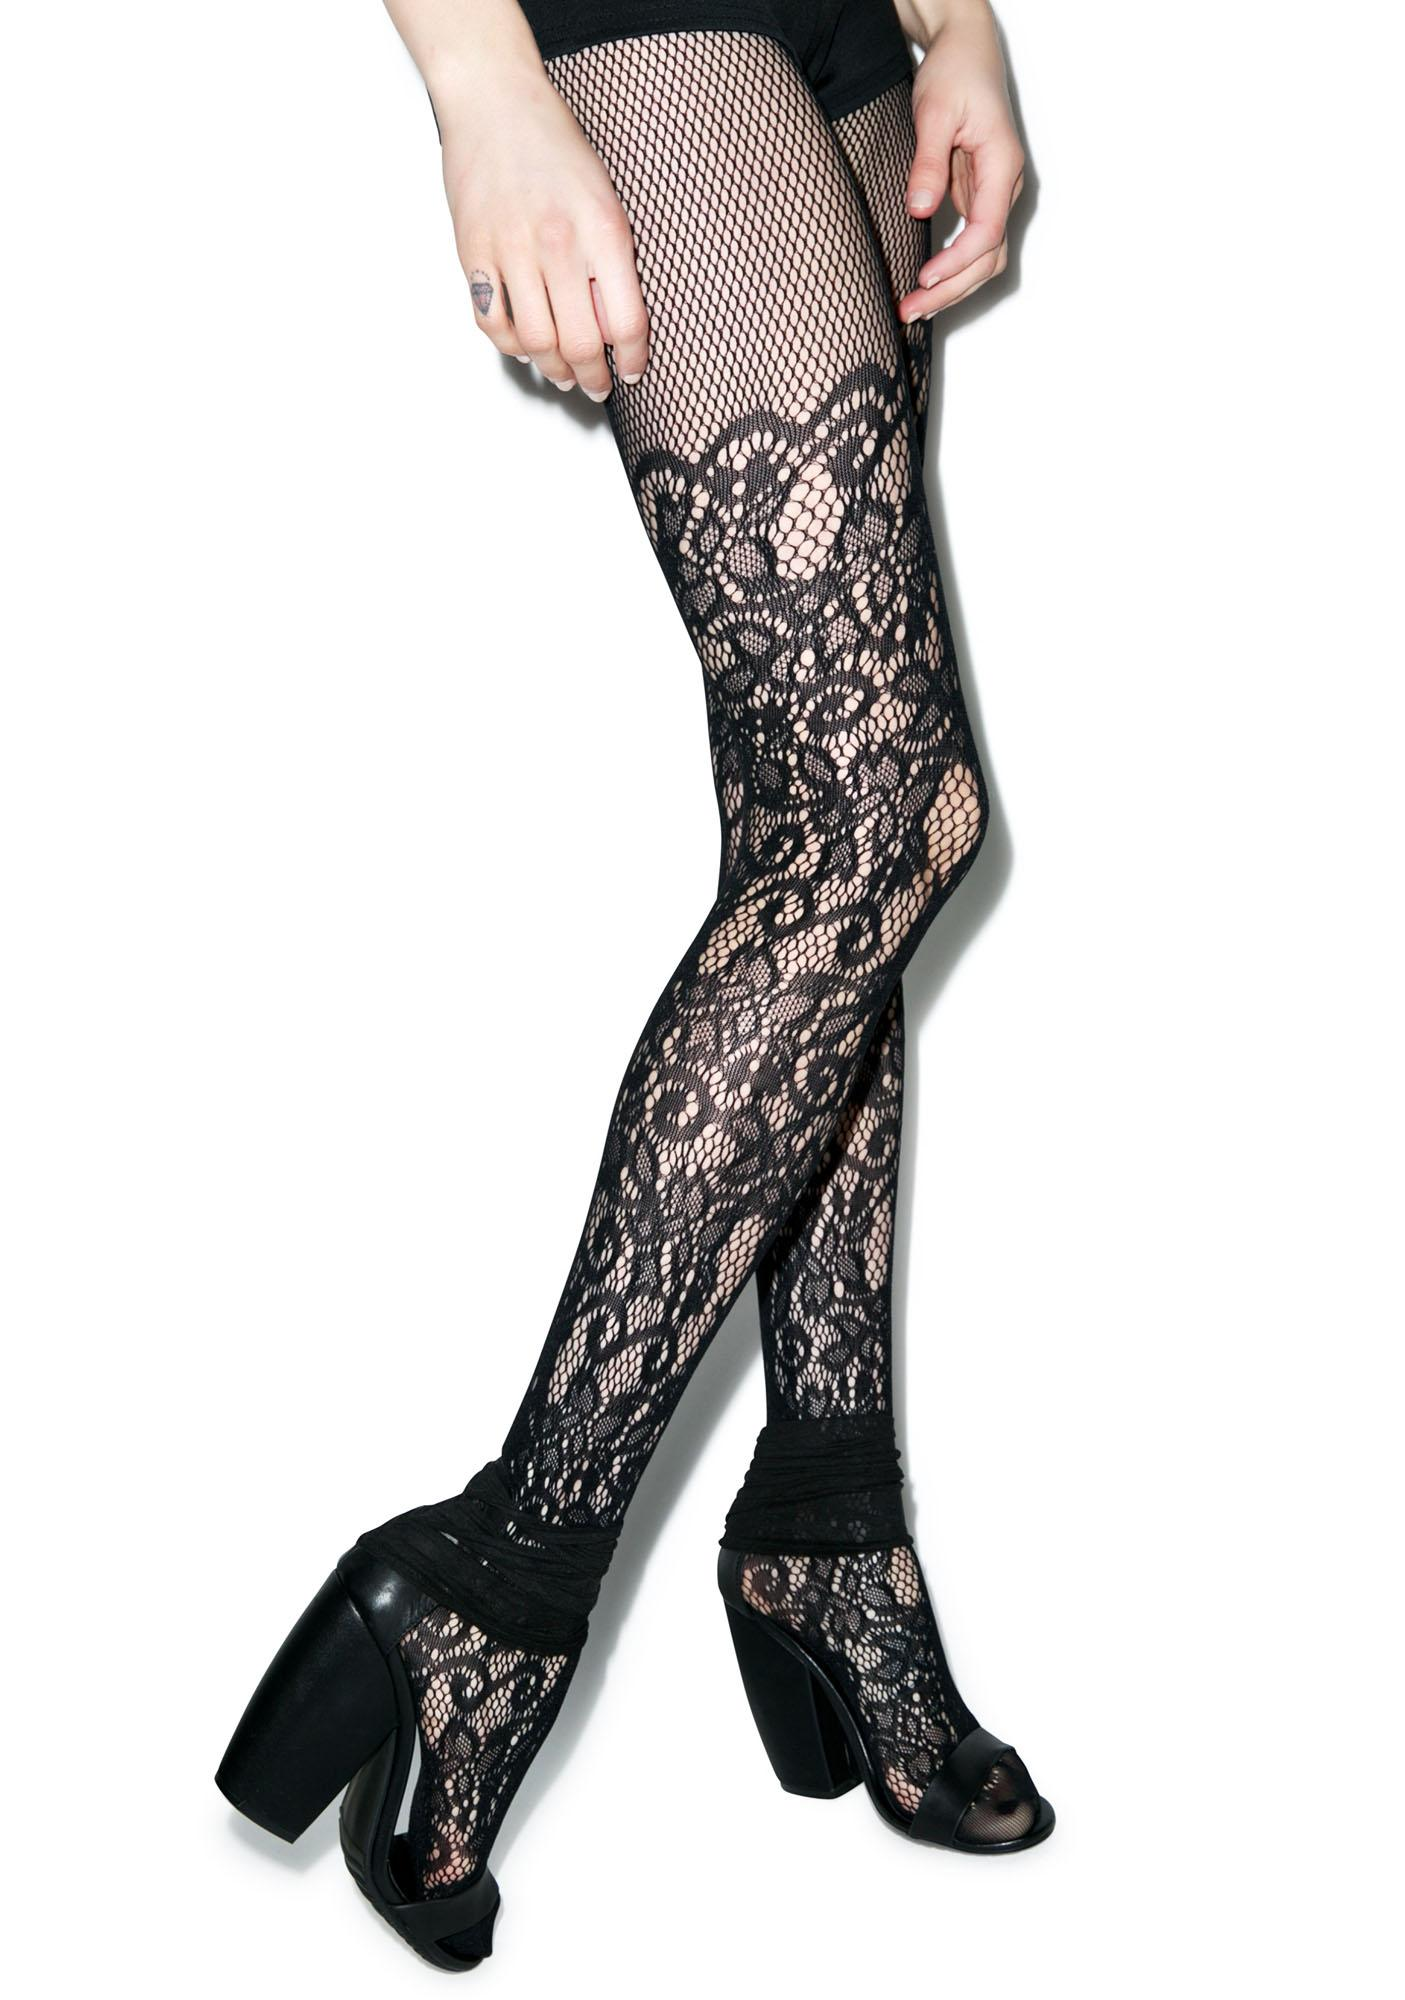 Vine Stem Tights